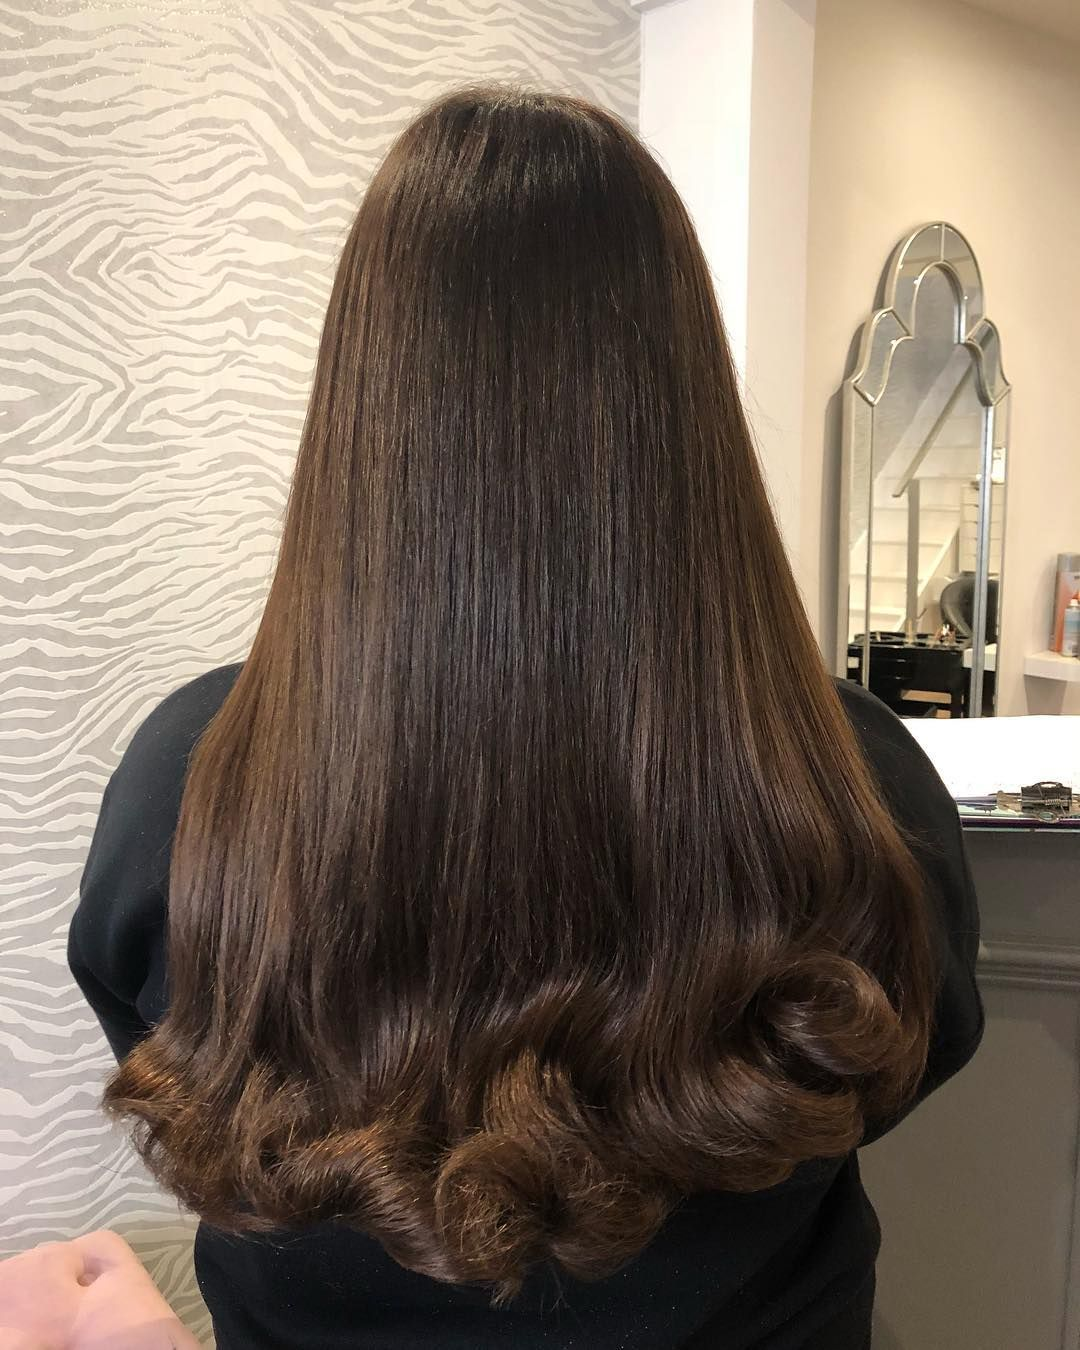 Haircut Styles For Long Thin Hair: Pin By Eden_wollenberg On Long Hair(styles)